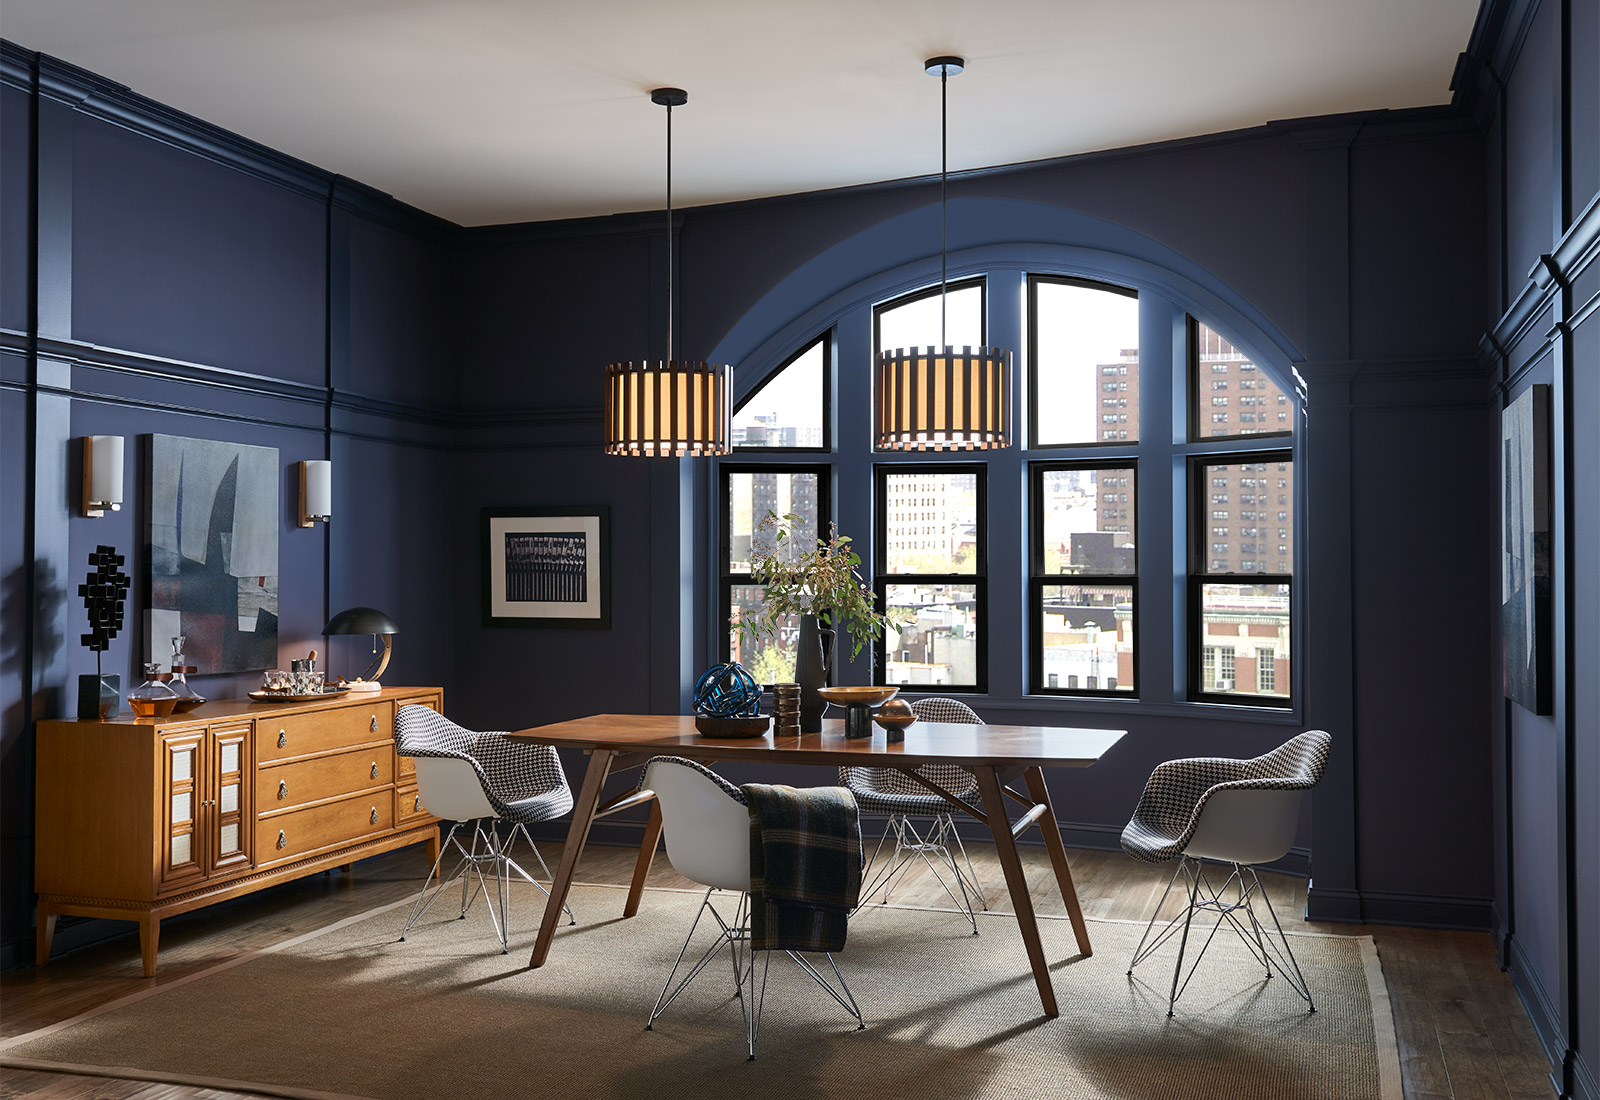 Dark blue dining room with city showing through large windows.